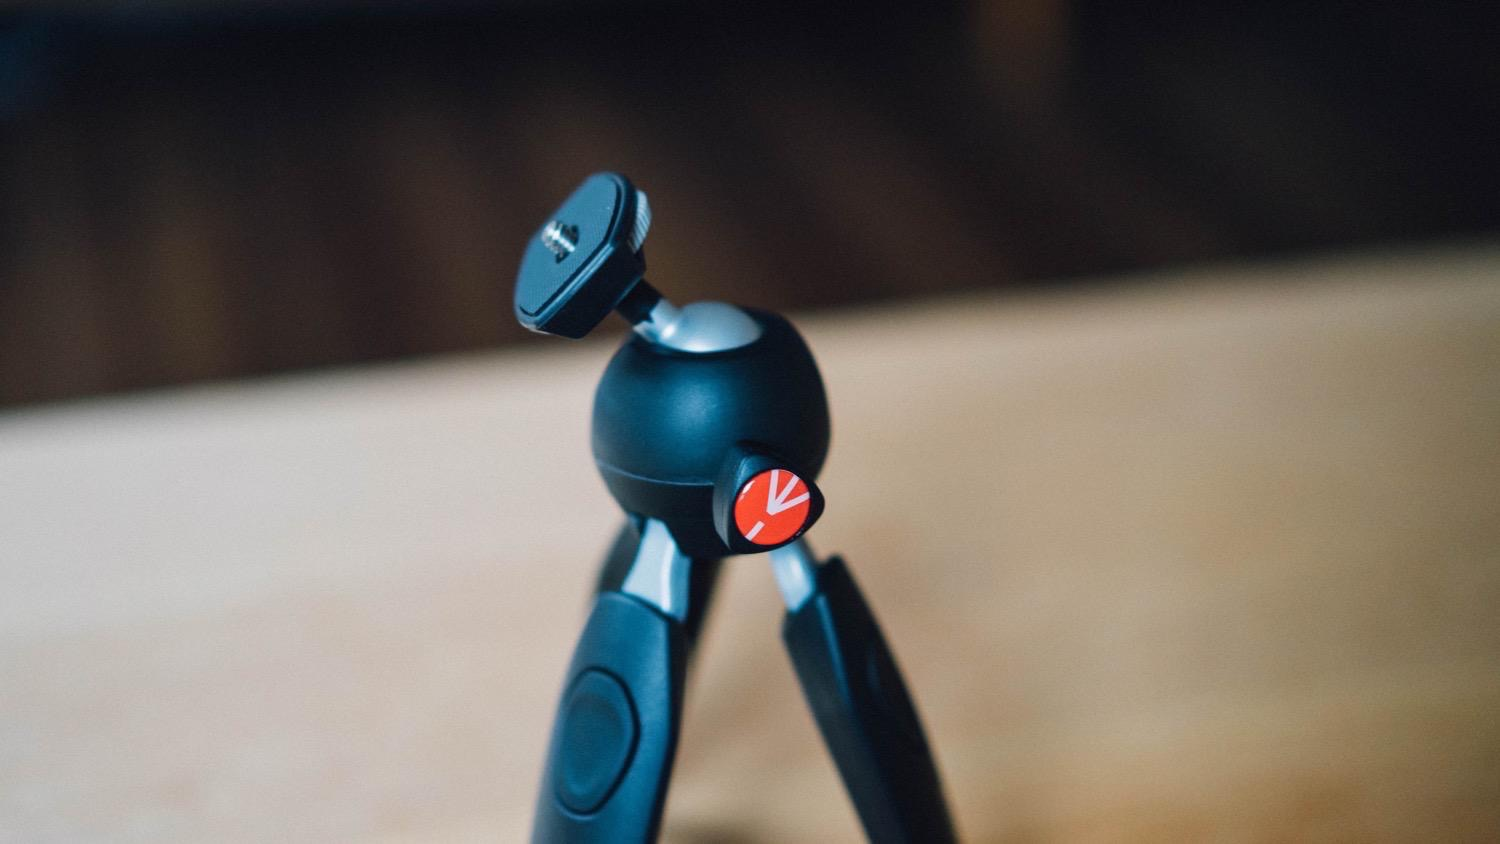 Manfrotto pixi evo 5